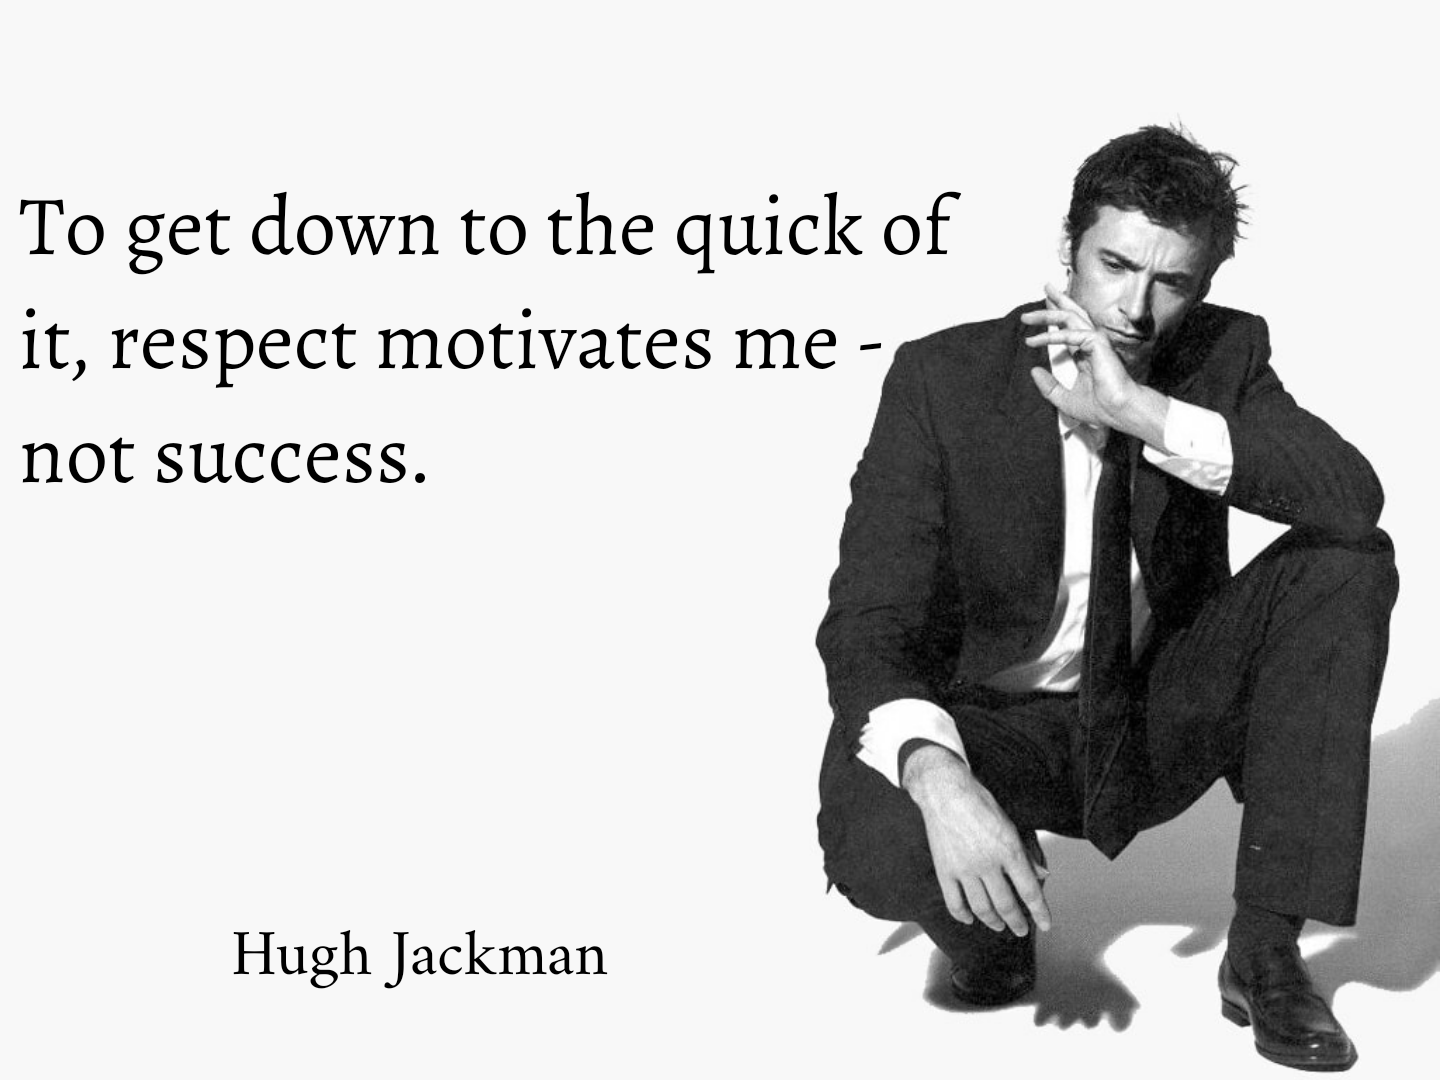 [Image] Quick, wise words from Hugh Jackman